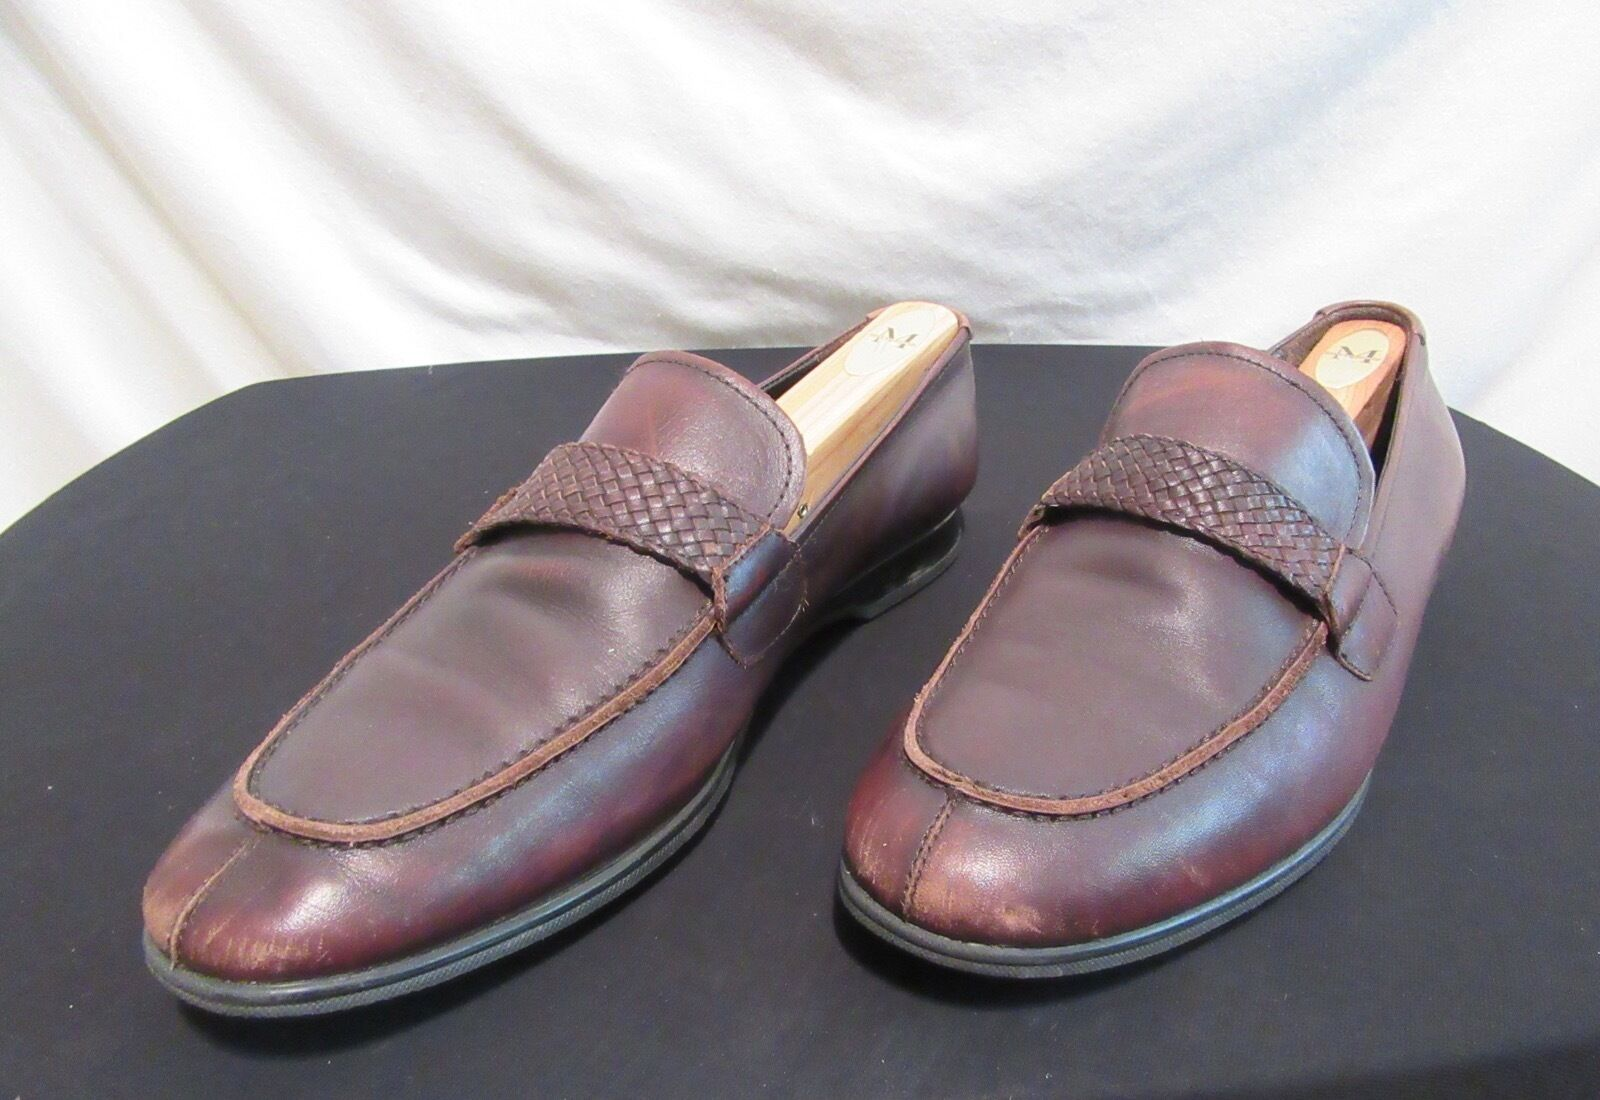 TOMMY BAHAMA Manhattan Island Men's Brown Leather 9M Loafer Style Dress Shoes 9M Leather 386c6b